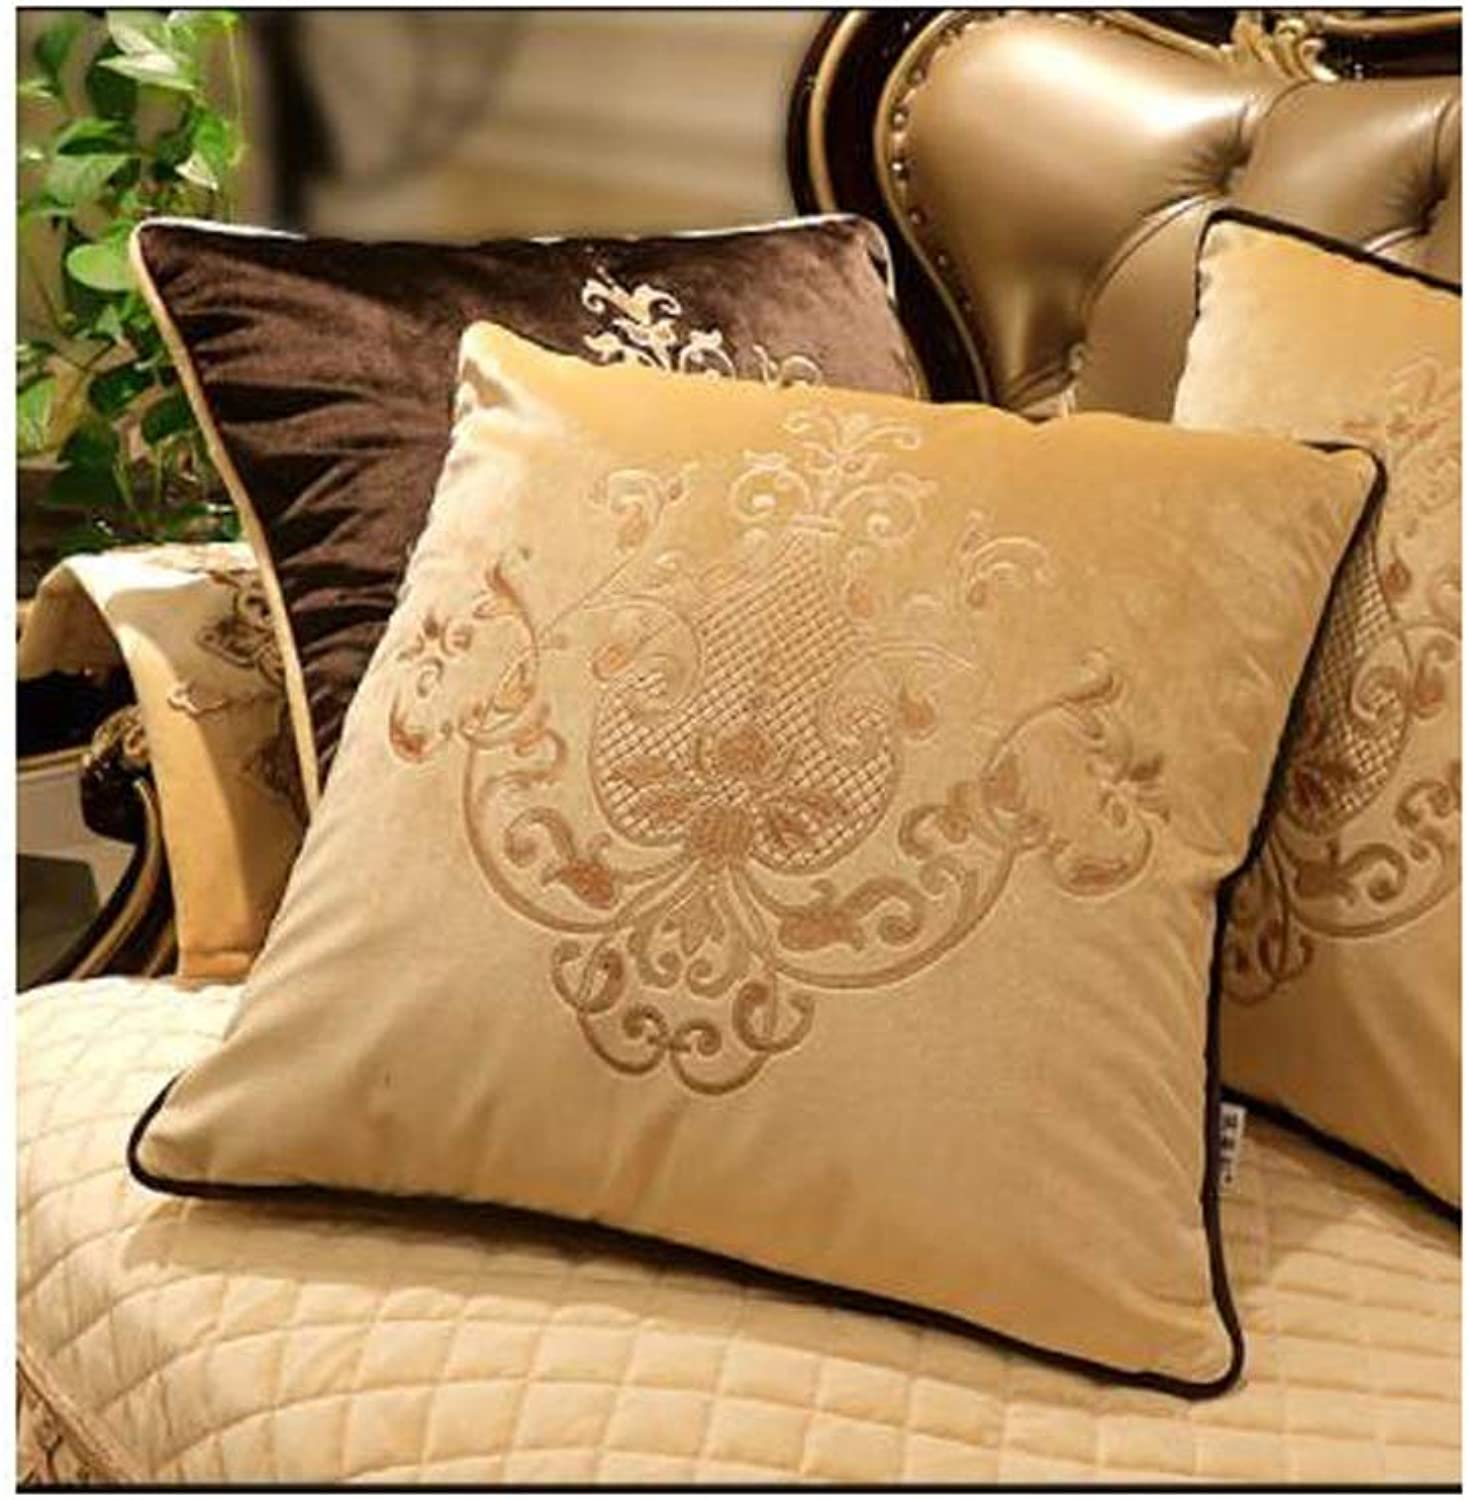 Pillow Sofa Pillow Cushion Living Room Embroidery Office Pillow Bed Backrest Cover Household Large Core QYSZYG (color   Brown, Size   60CM60CM)